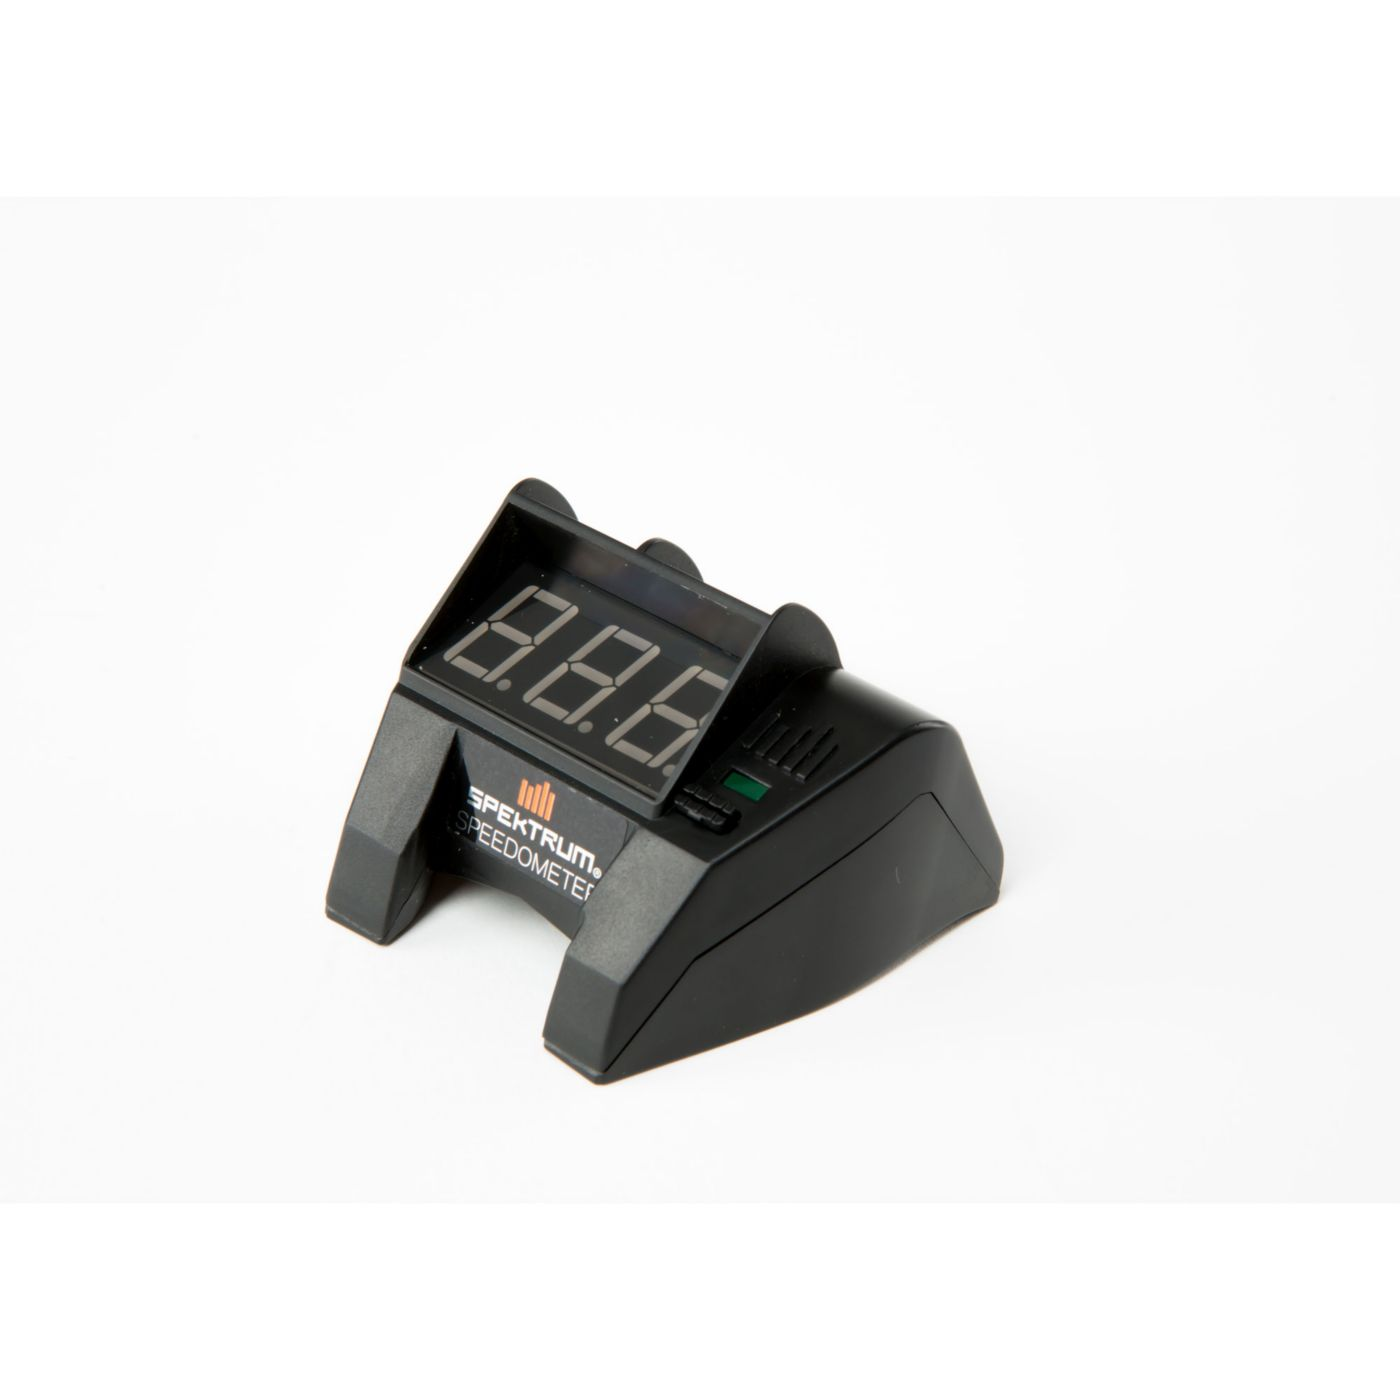 Optional Speedometer DX2E